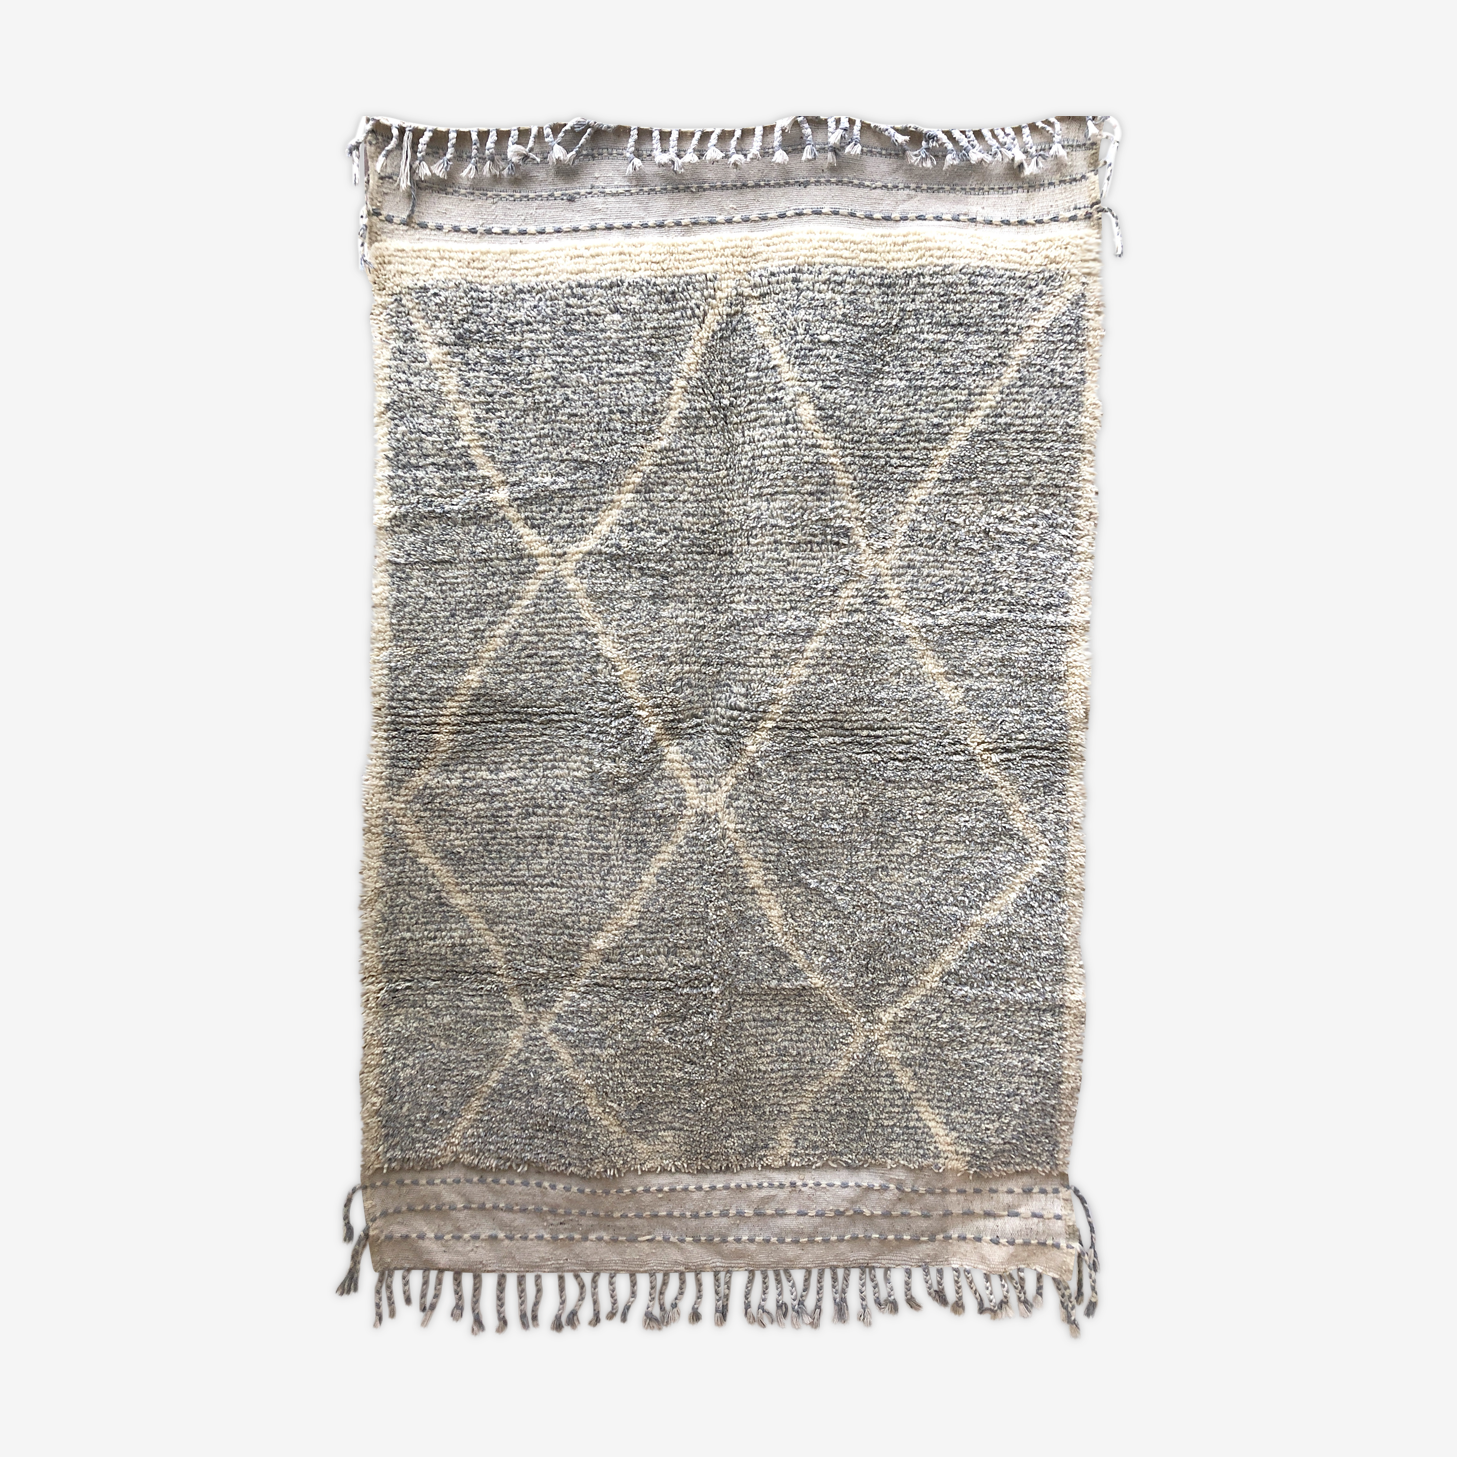 Berber carpet Moroccan Beni Ouarain off-white and gray speckled 235x140cm